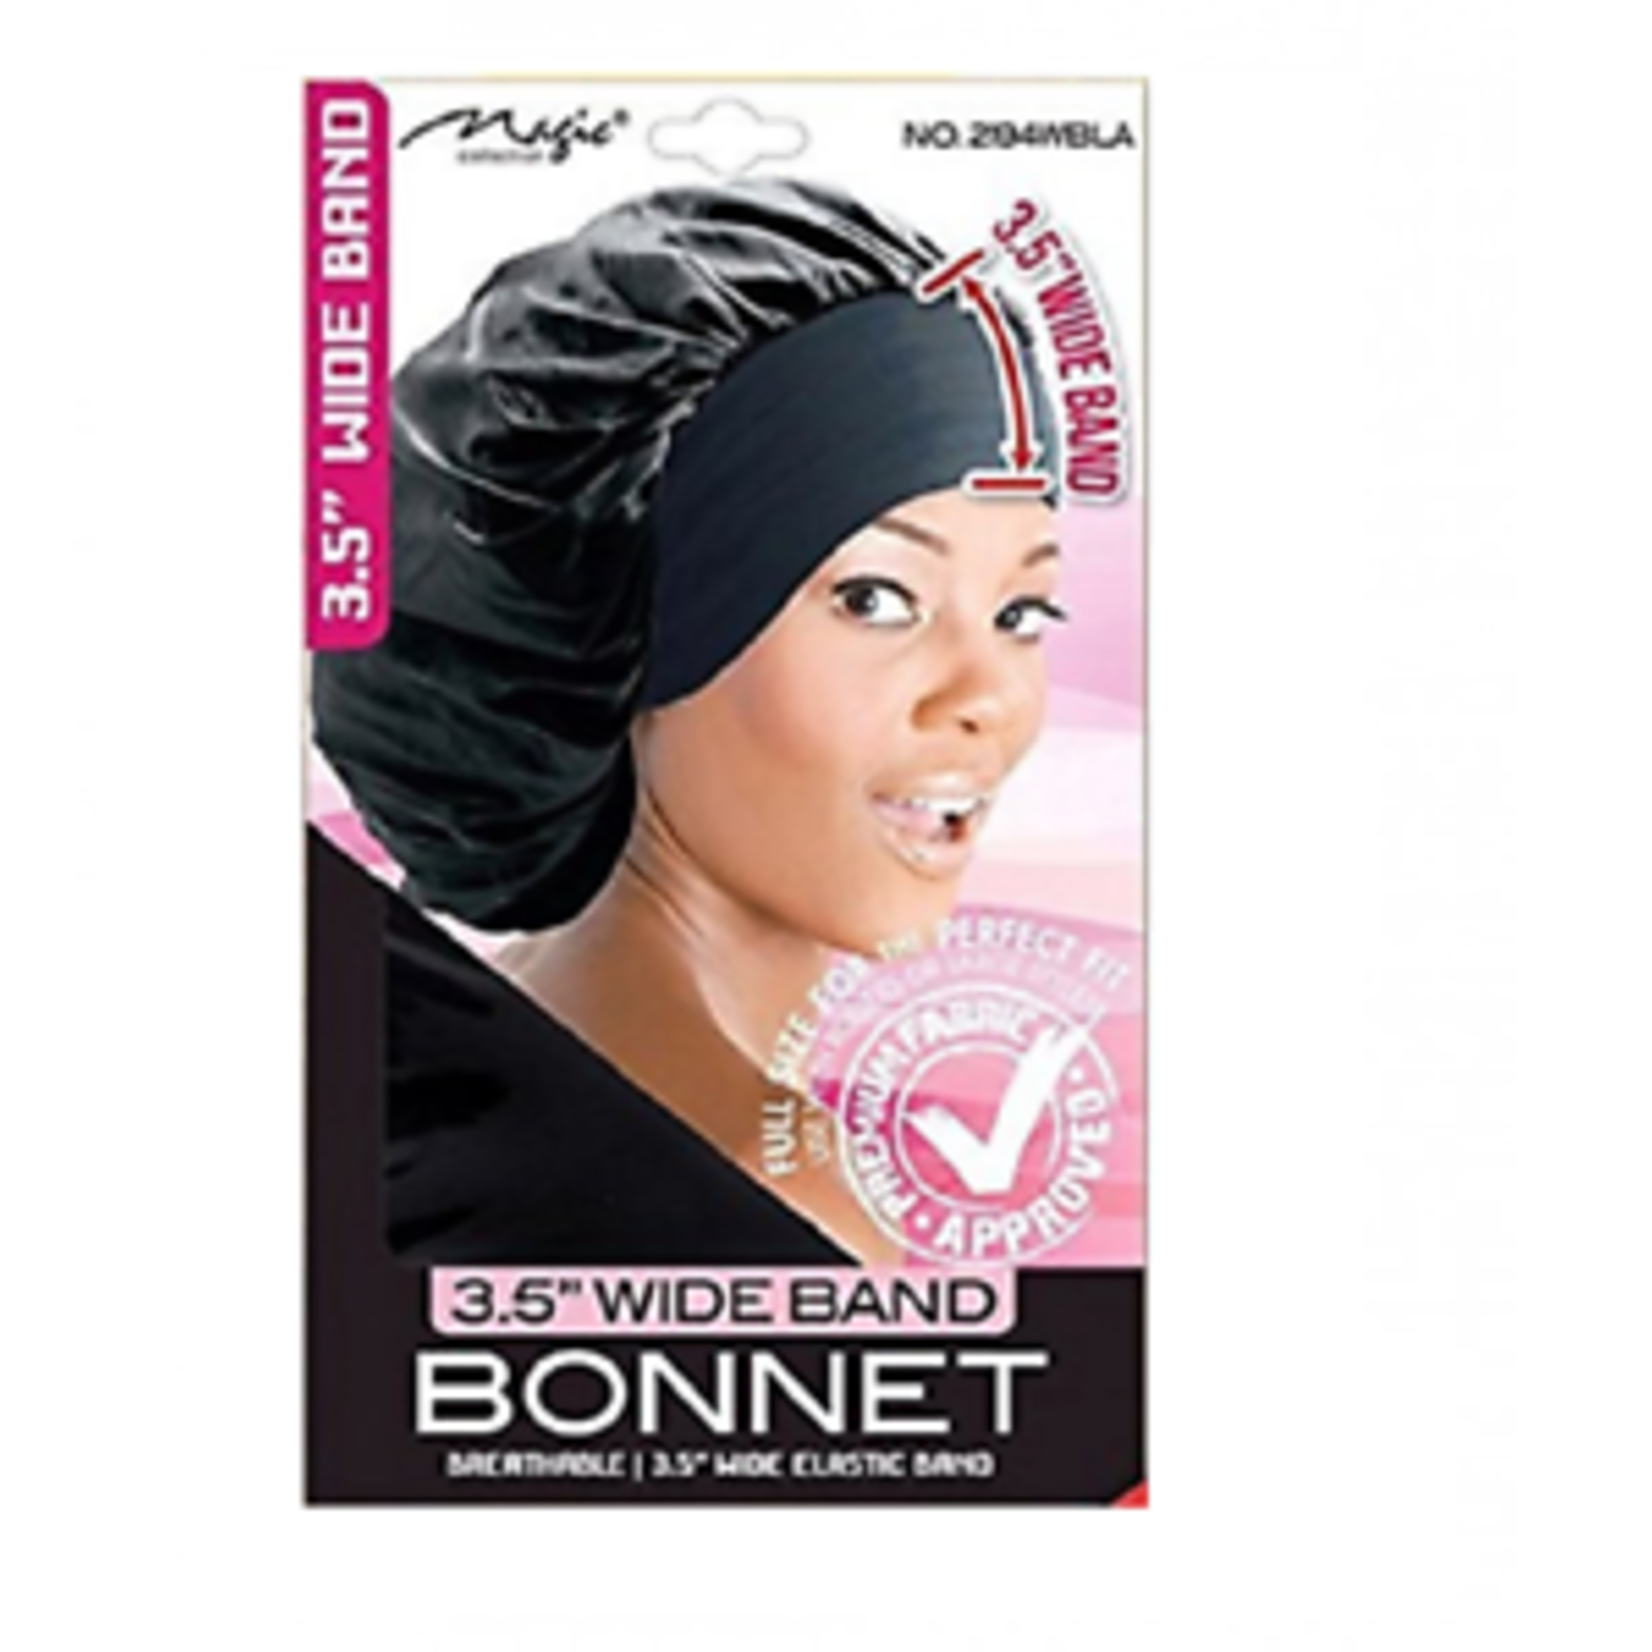 MAGIC COLLECTION MAGIC COLLECTION 3.5 WIDE BAND BONNET